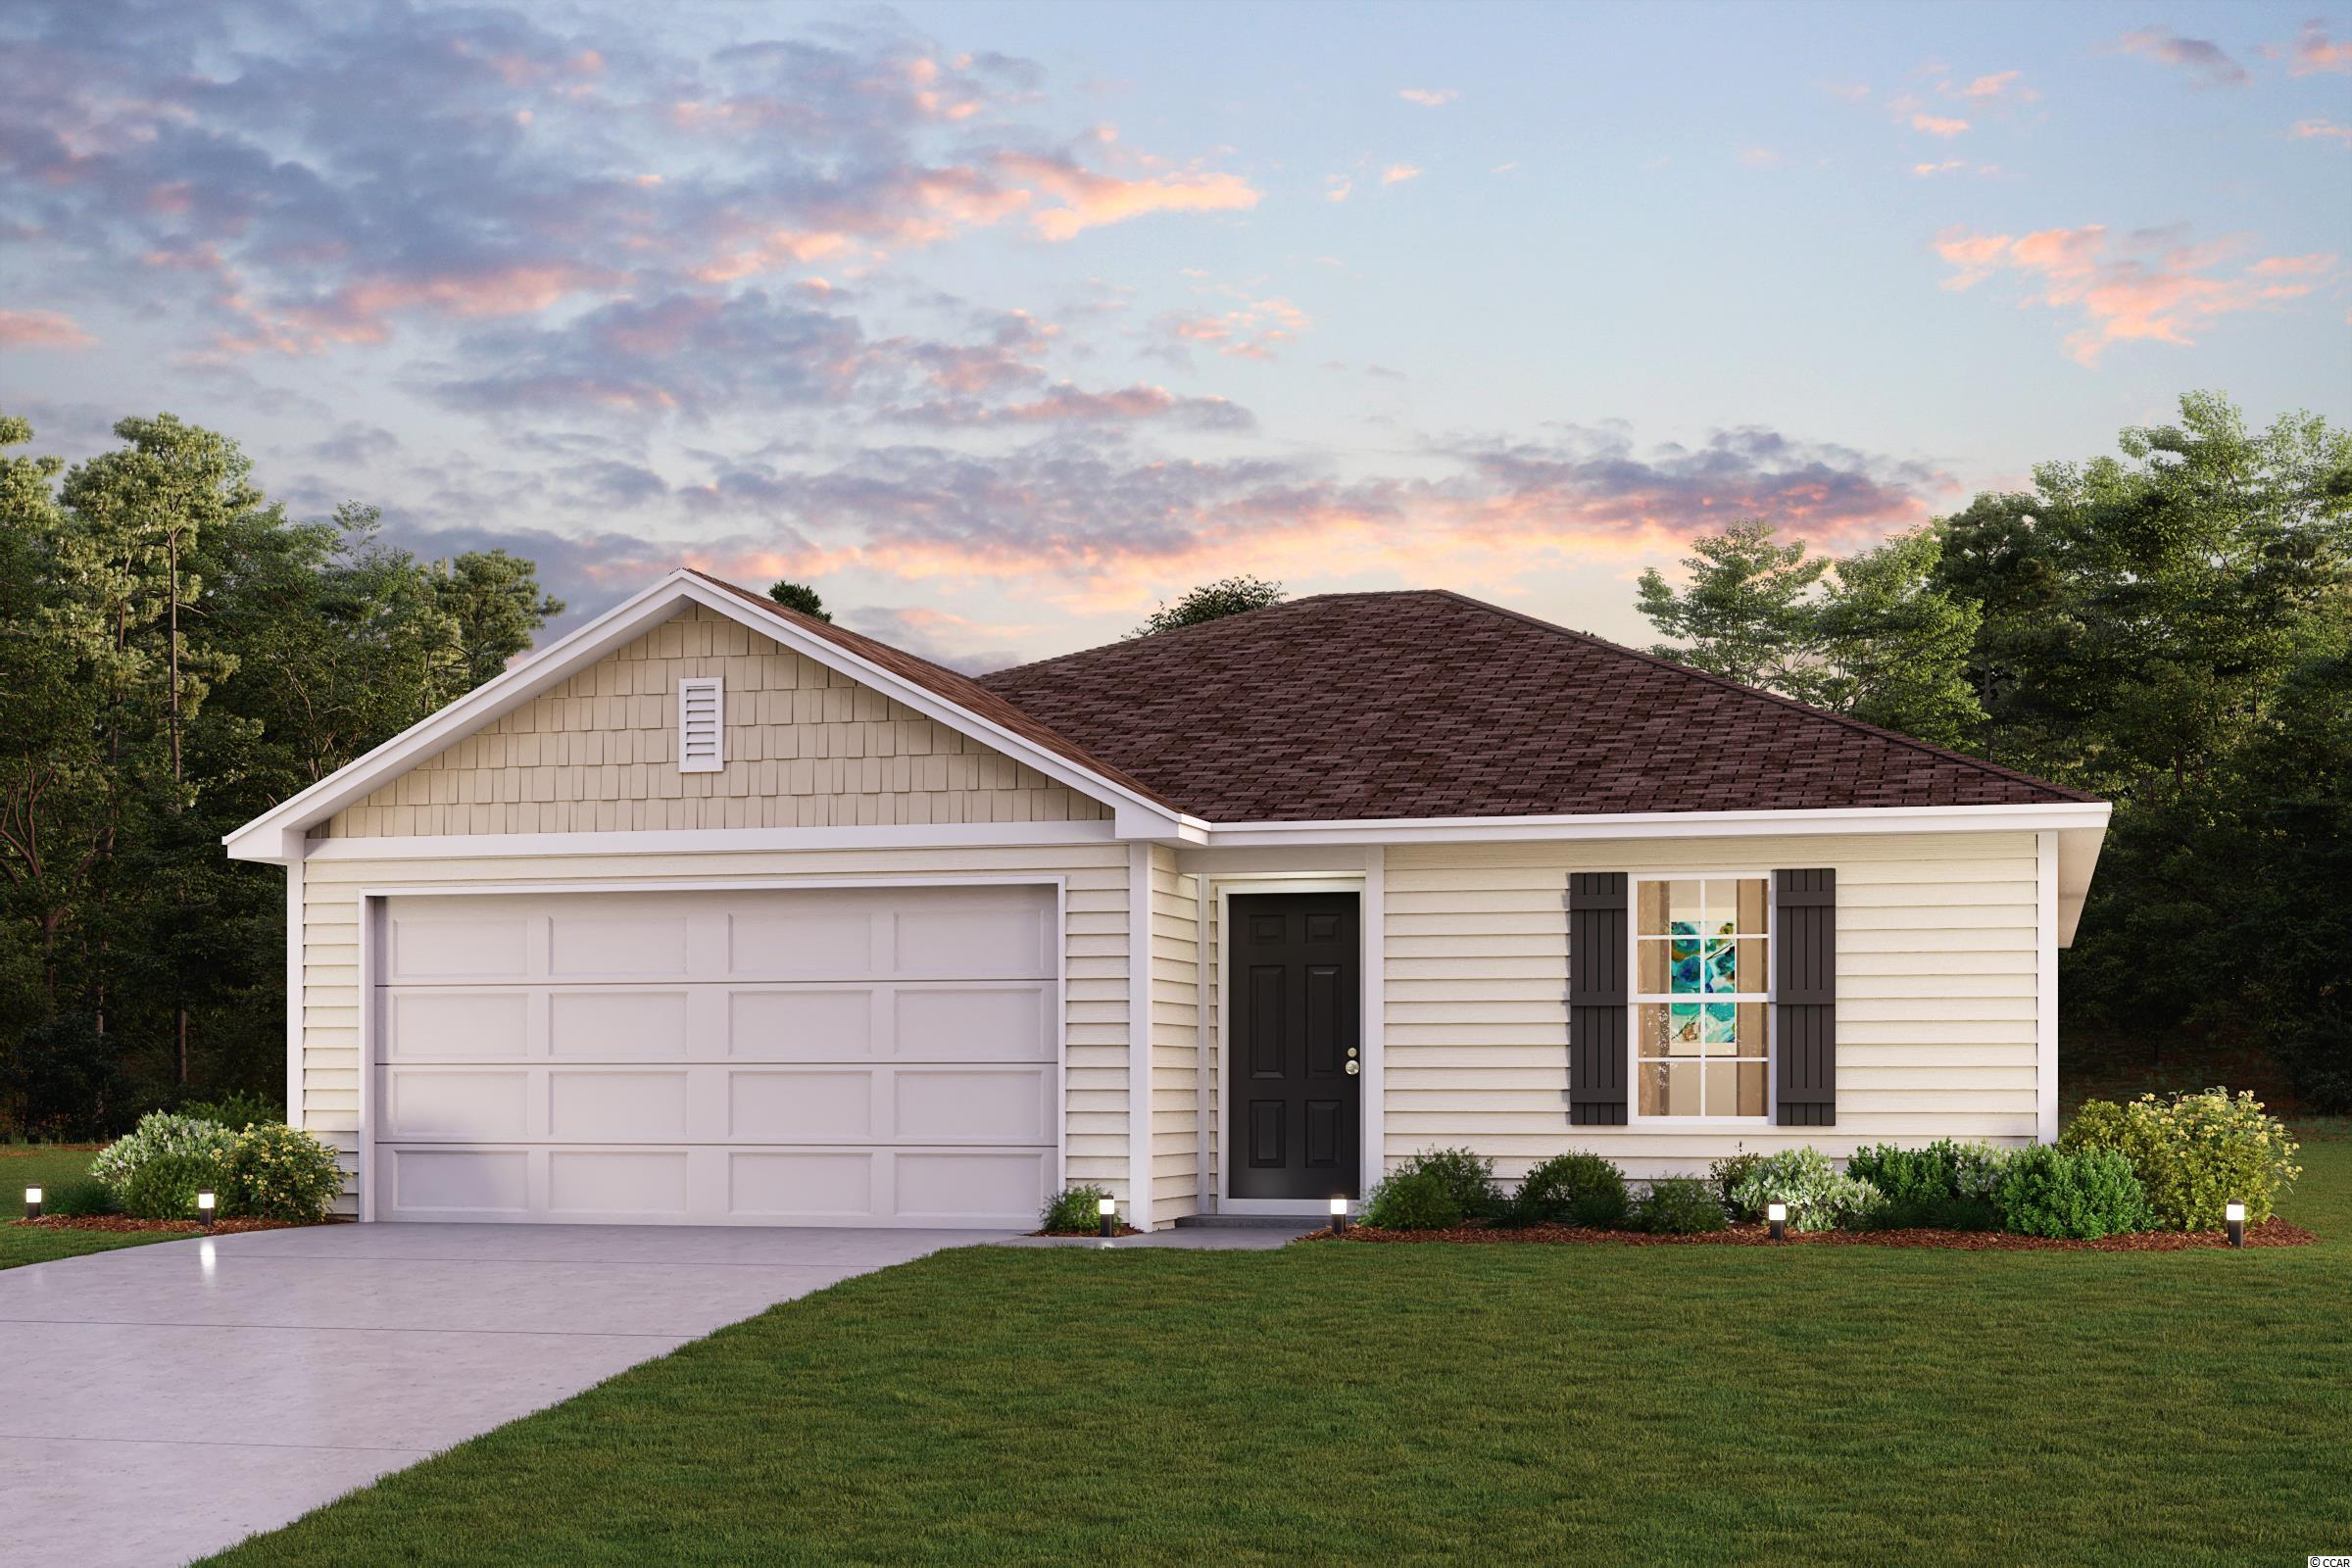 Welcome home to this NEW Single-Story Home in the Loblolly Community! The desirable Concord Plan boasts an open design encompassing the Living, Dining, and Kitchen spaces. The Kitchen features gorgeous cabinets and granite countertops and Stainless-Steel Appliances (Includes, Range with Microwave hood, and Dishwasher). Additionally, the primary suite has a private bath with dual vanity sinks and a walk-in closet. This home also includes 3 more bedrooms and a full secondary bathroom. Outside, there is a relaxing Covered Patio space.